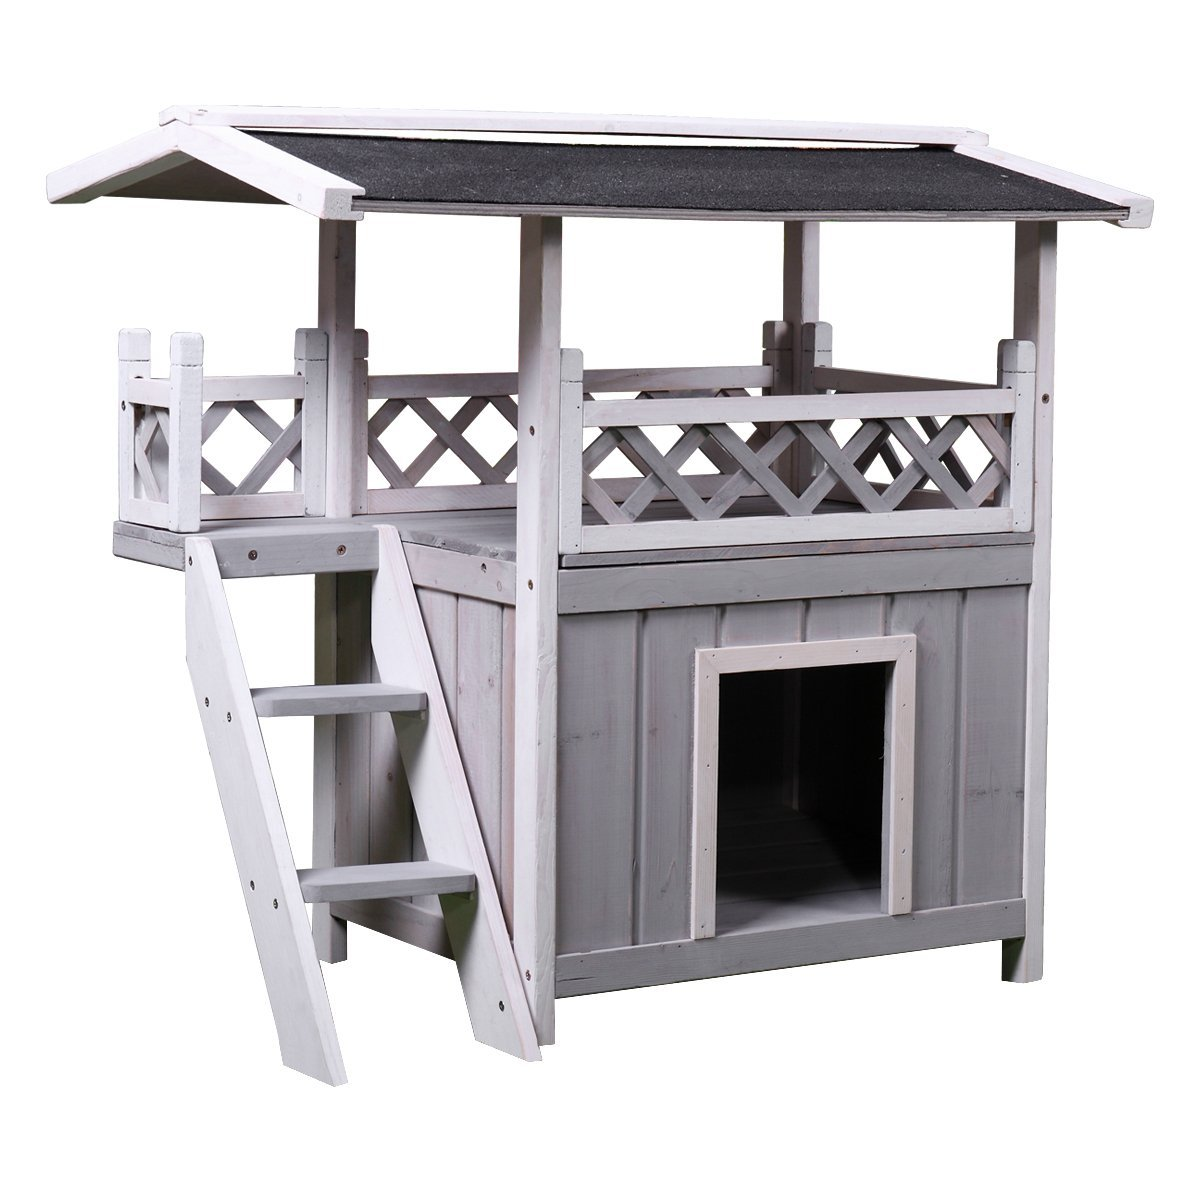 LAZYMOON Wooden Dog Pet House Cat Room Puppy Kennel Indoor Outdoor Shelter w/Roof